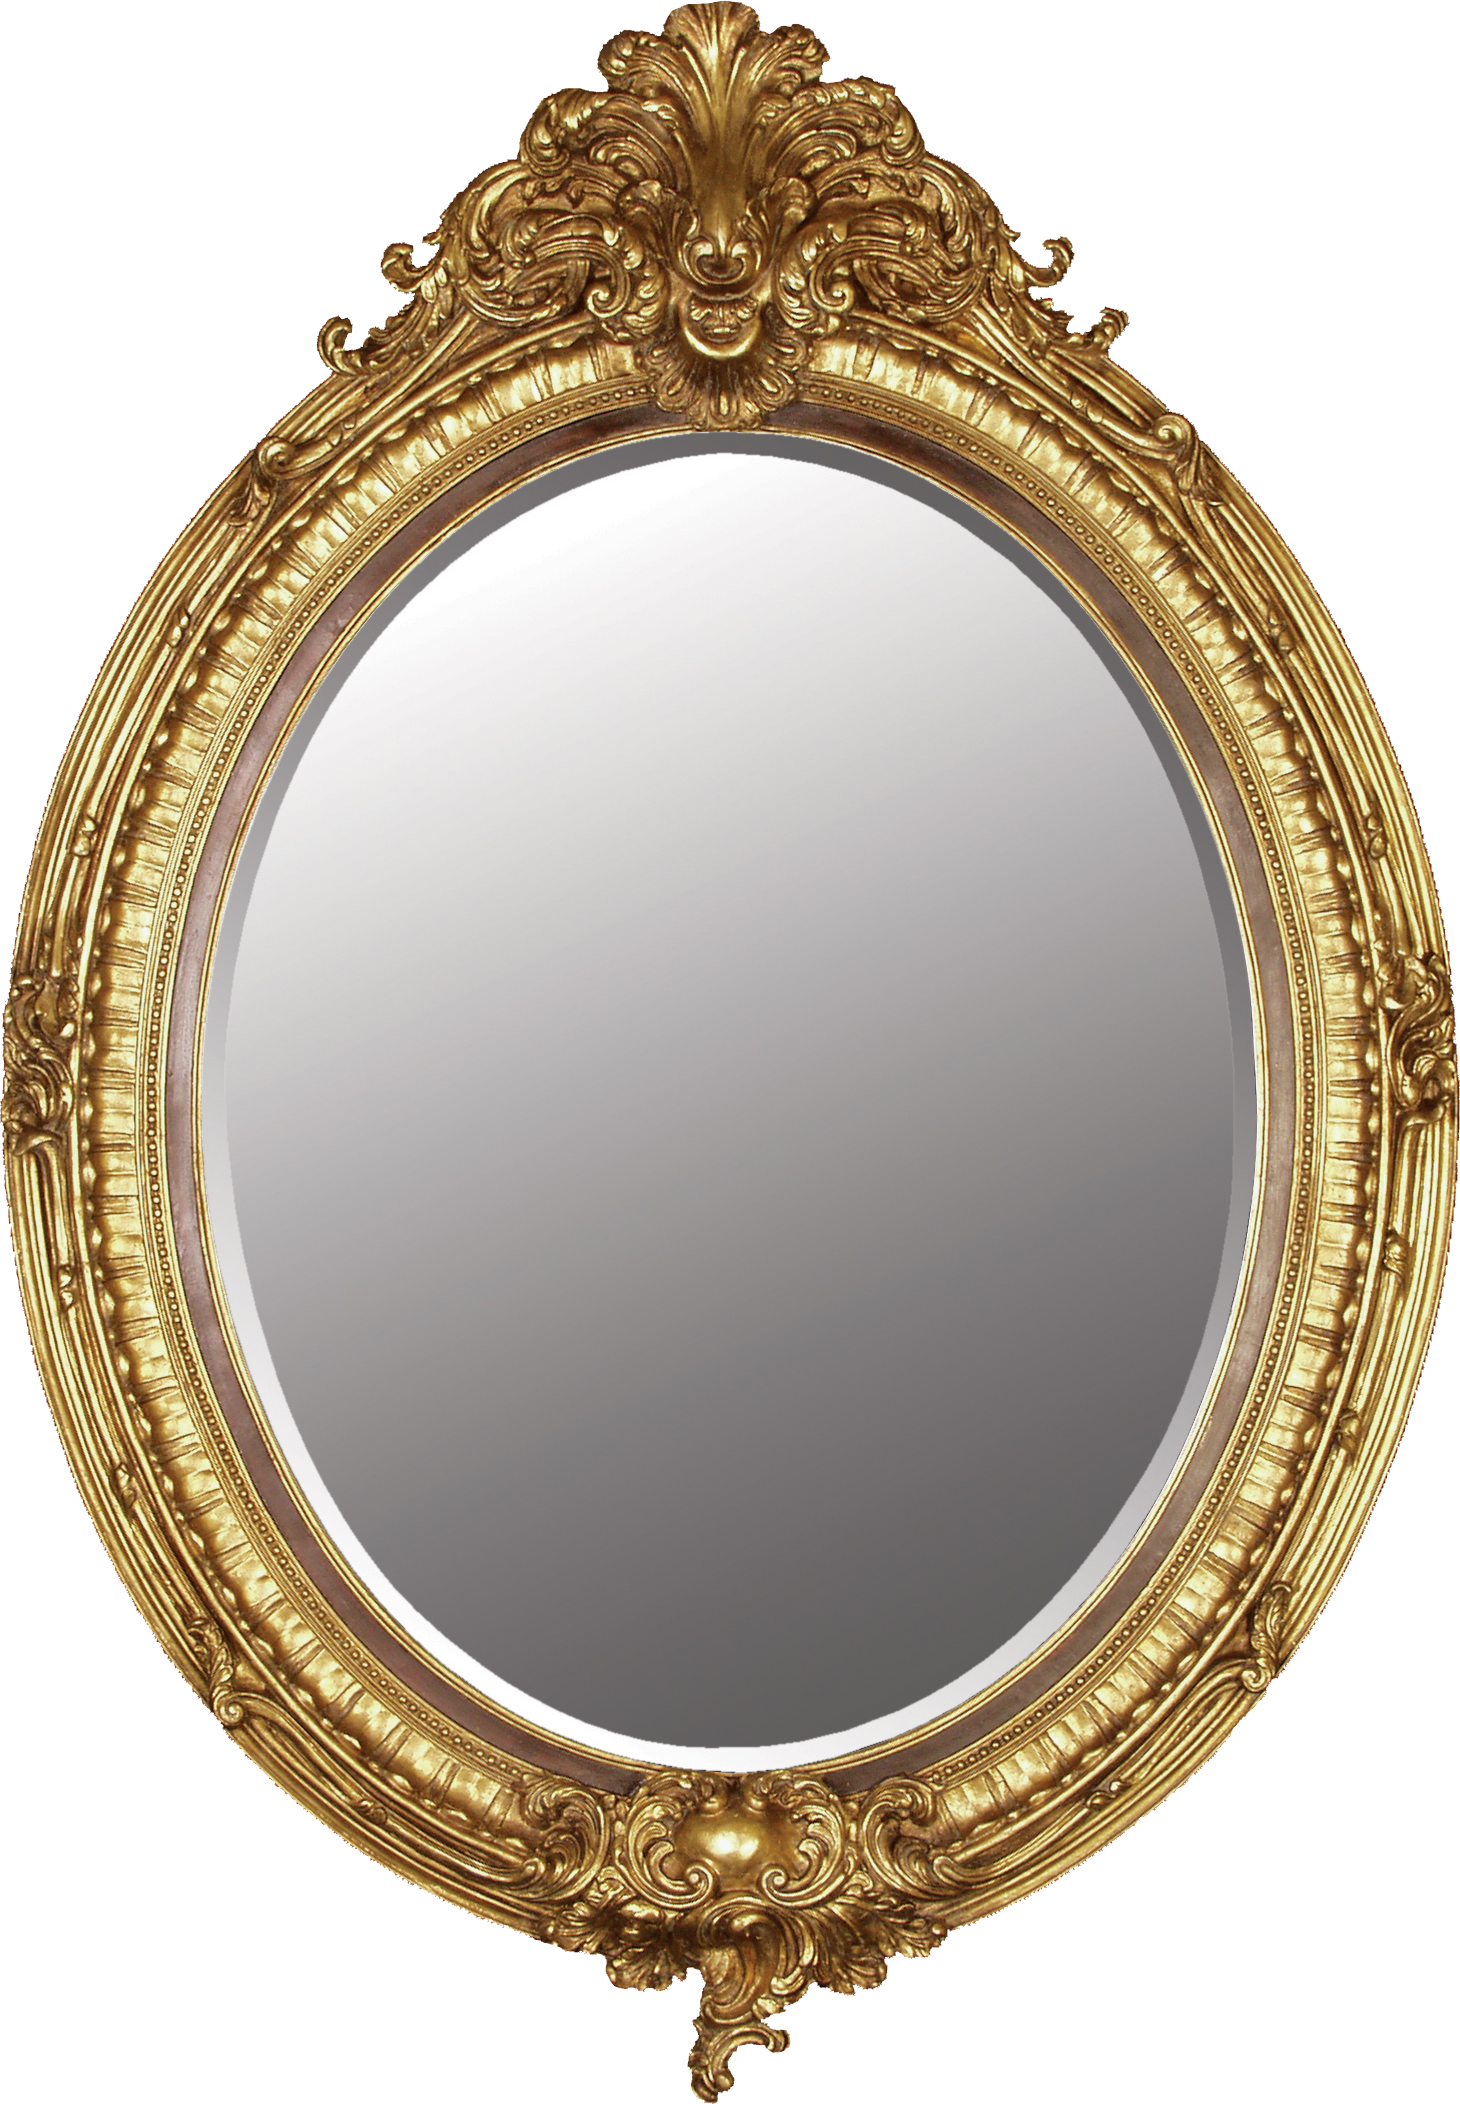 Mirror clipart gold mirror. Png image purepng free